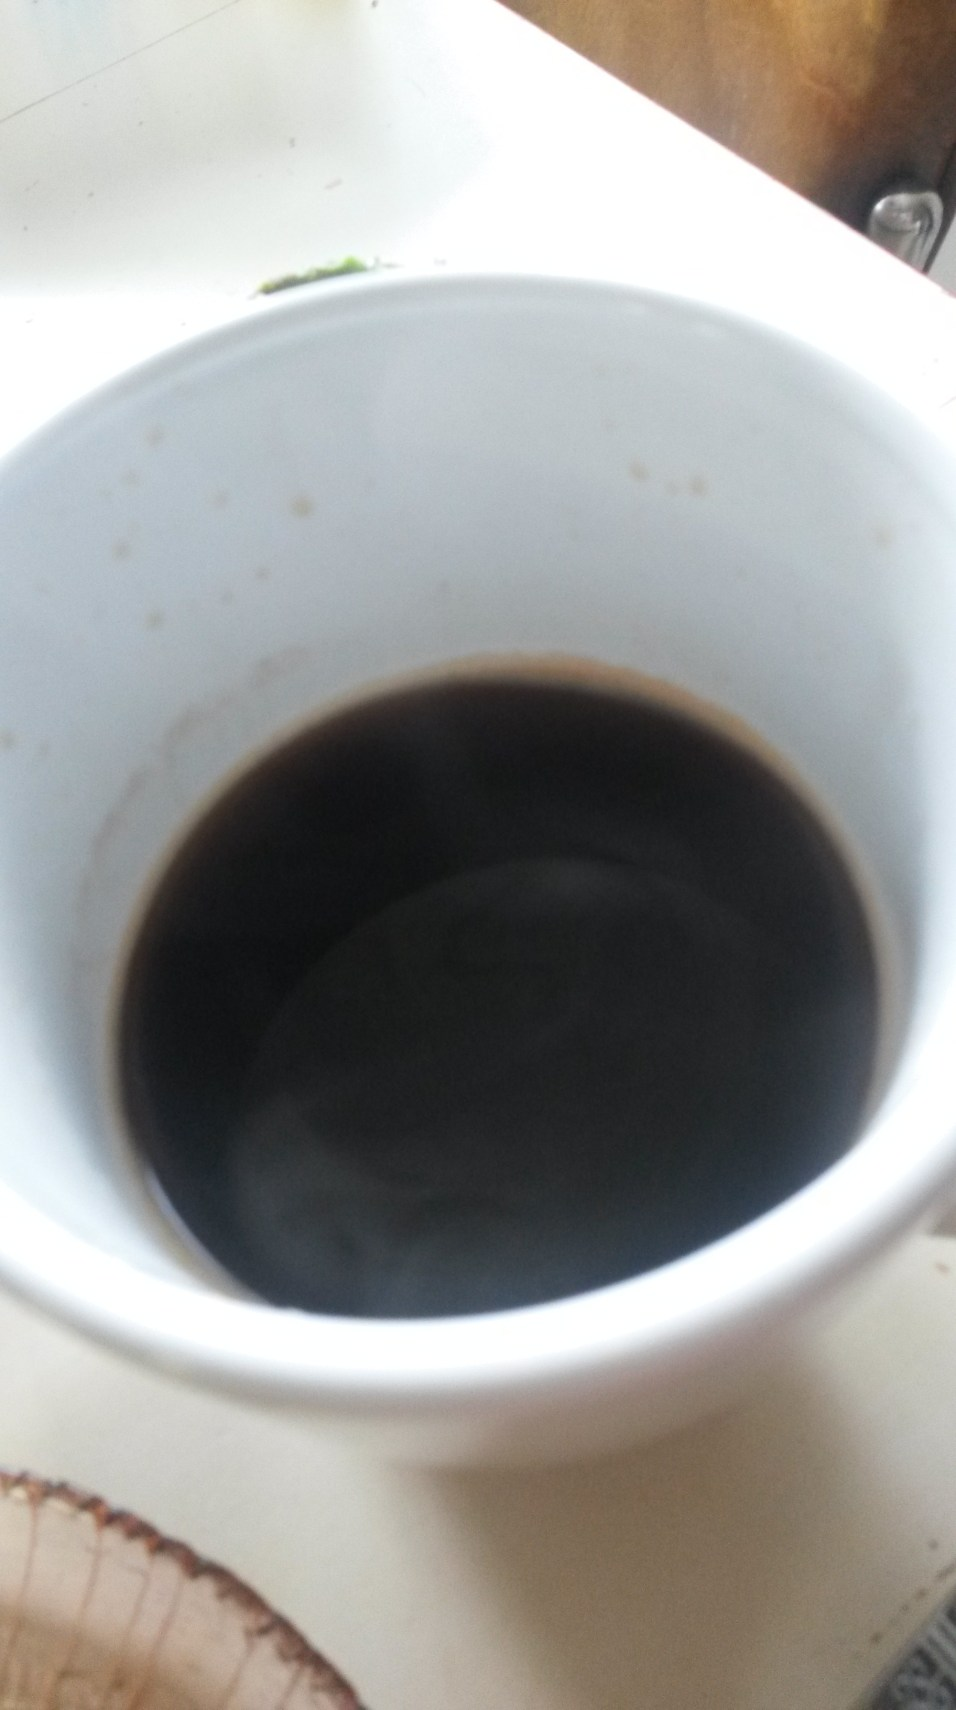 Coffee black! I haven't drank coffee in two days, no headaches!